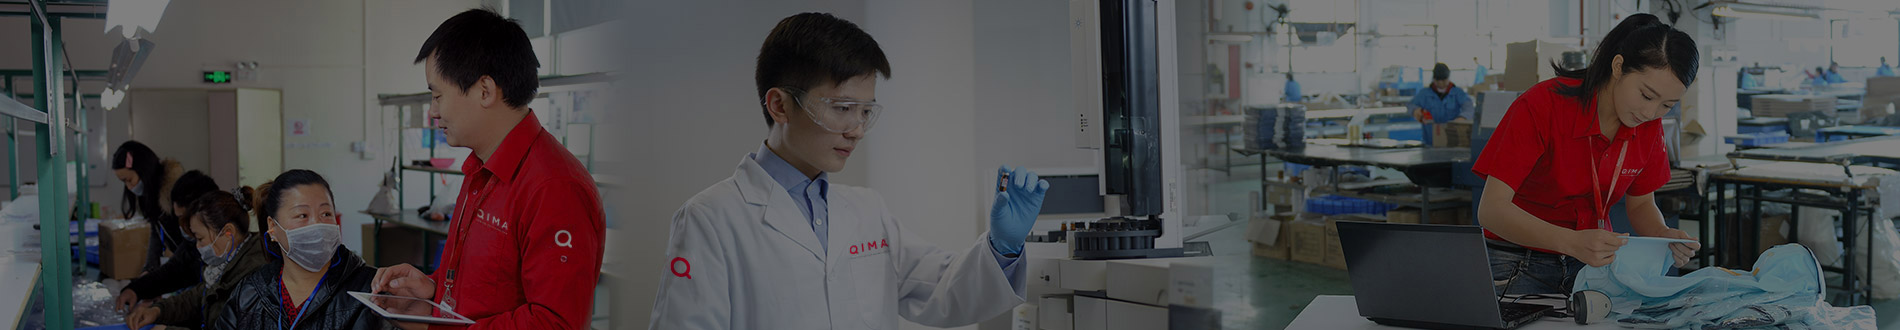 Product Inspection Agency | QIMA